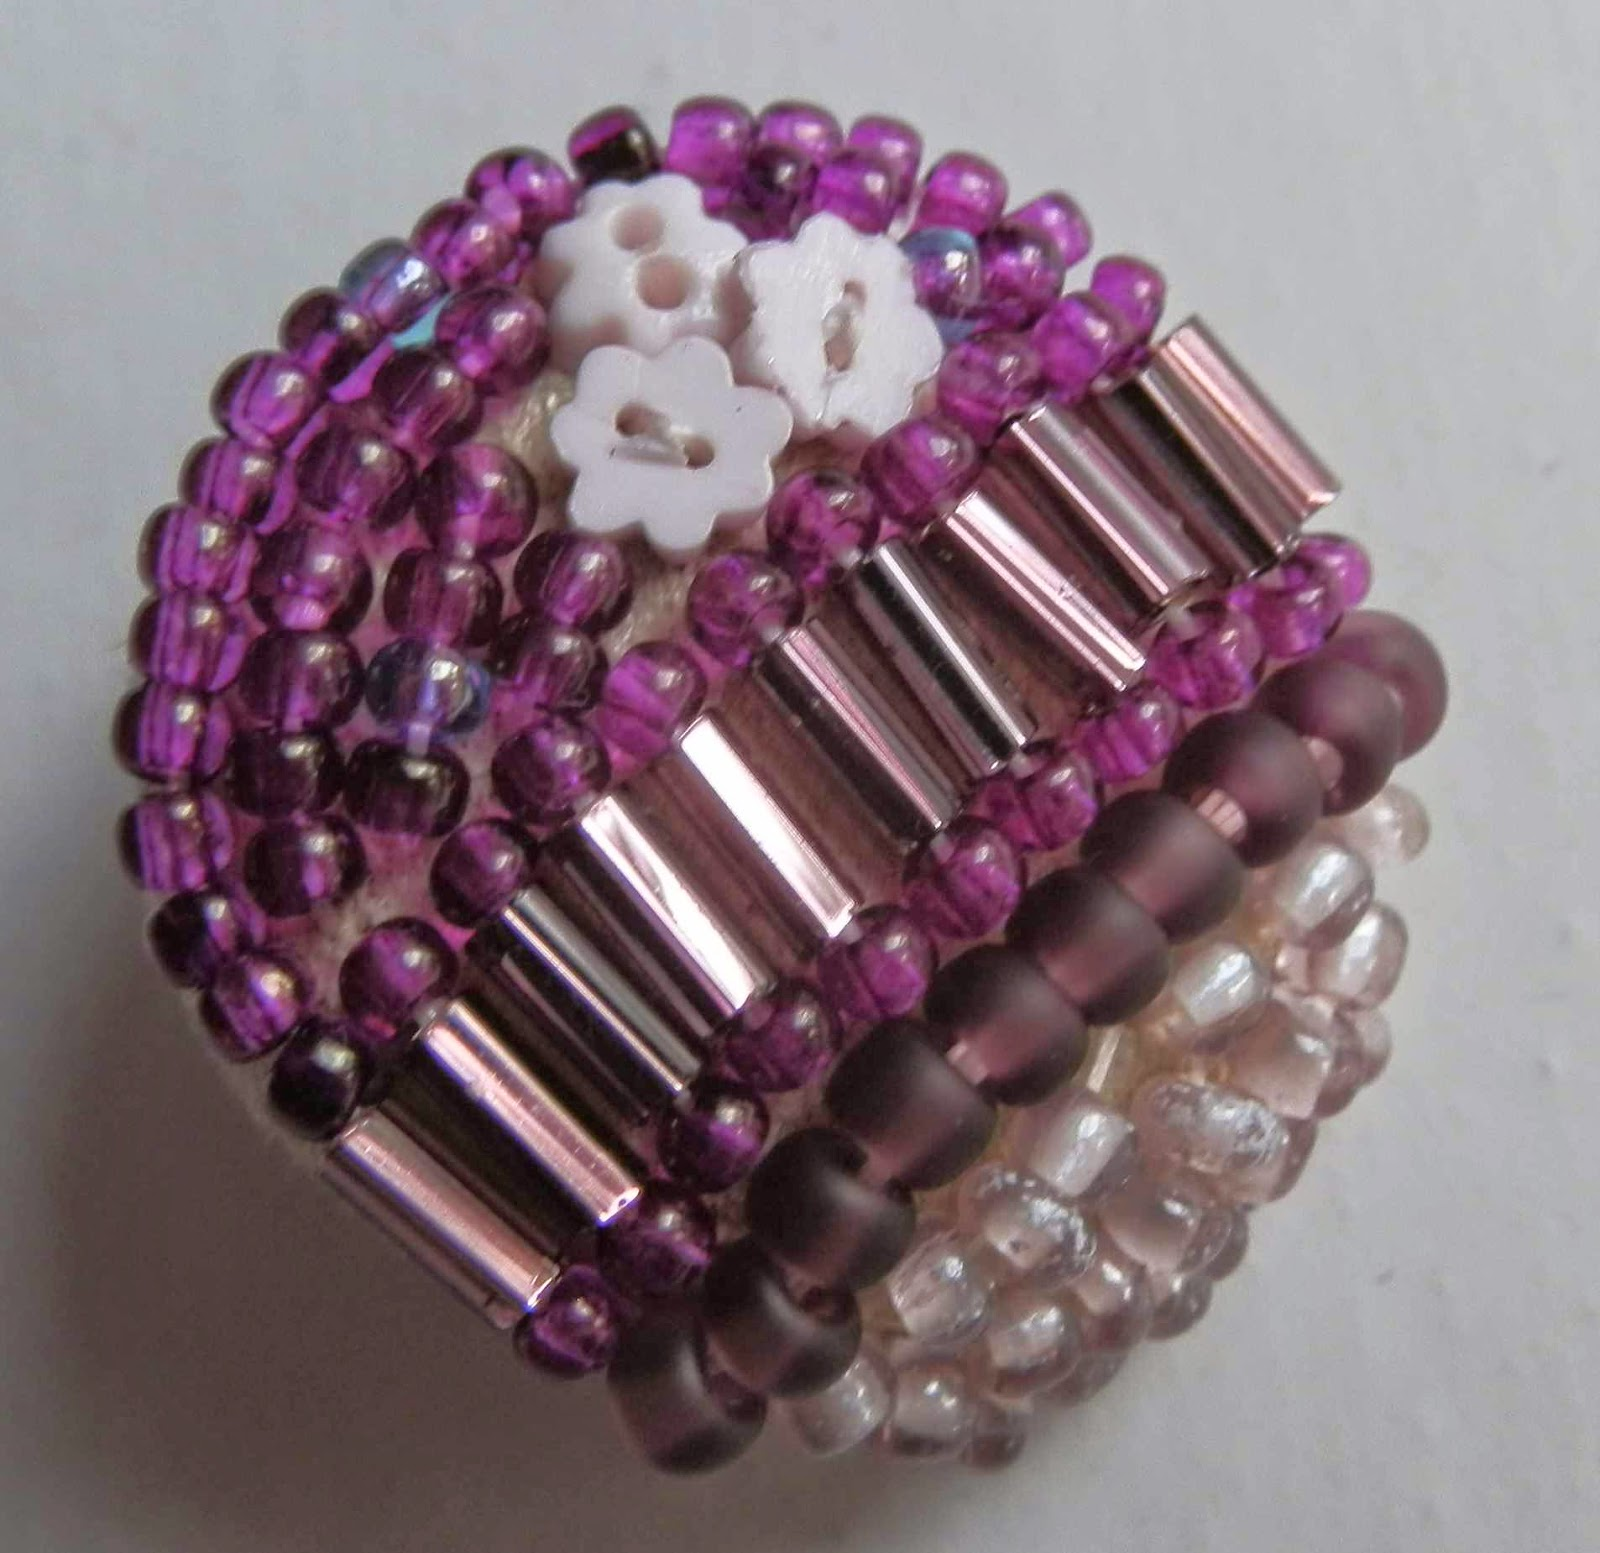 Beaded button featuring purple and pink beads